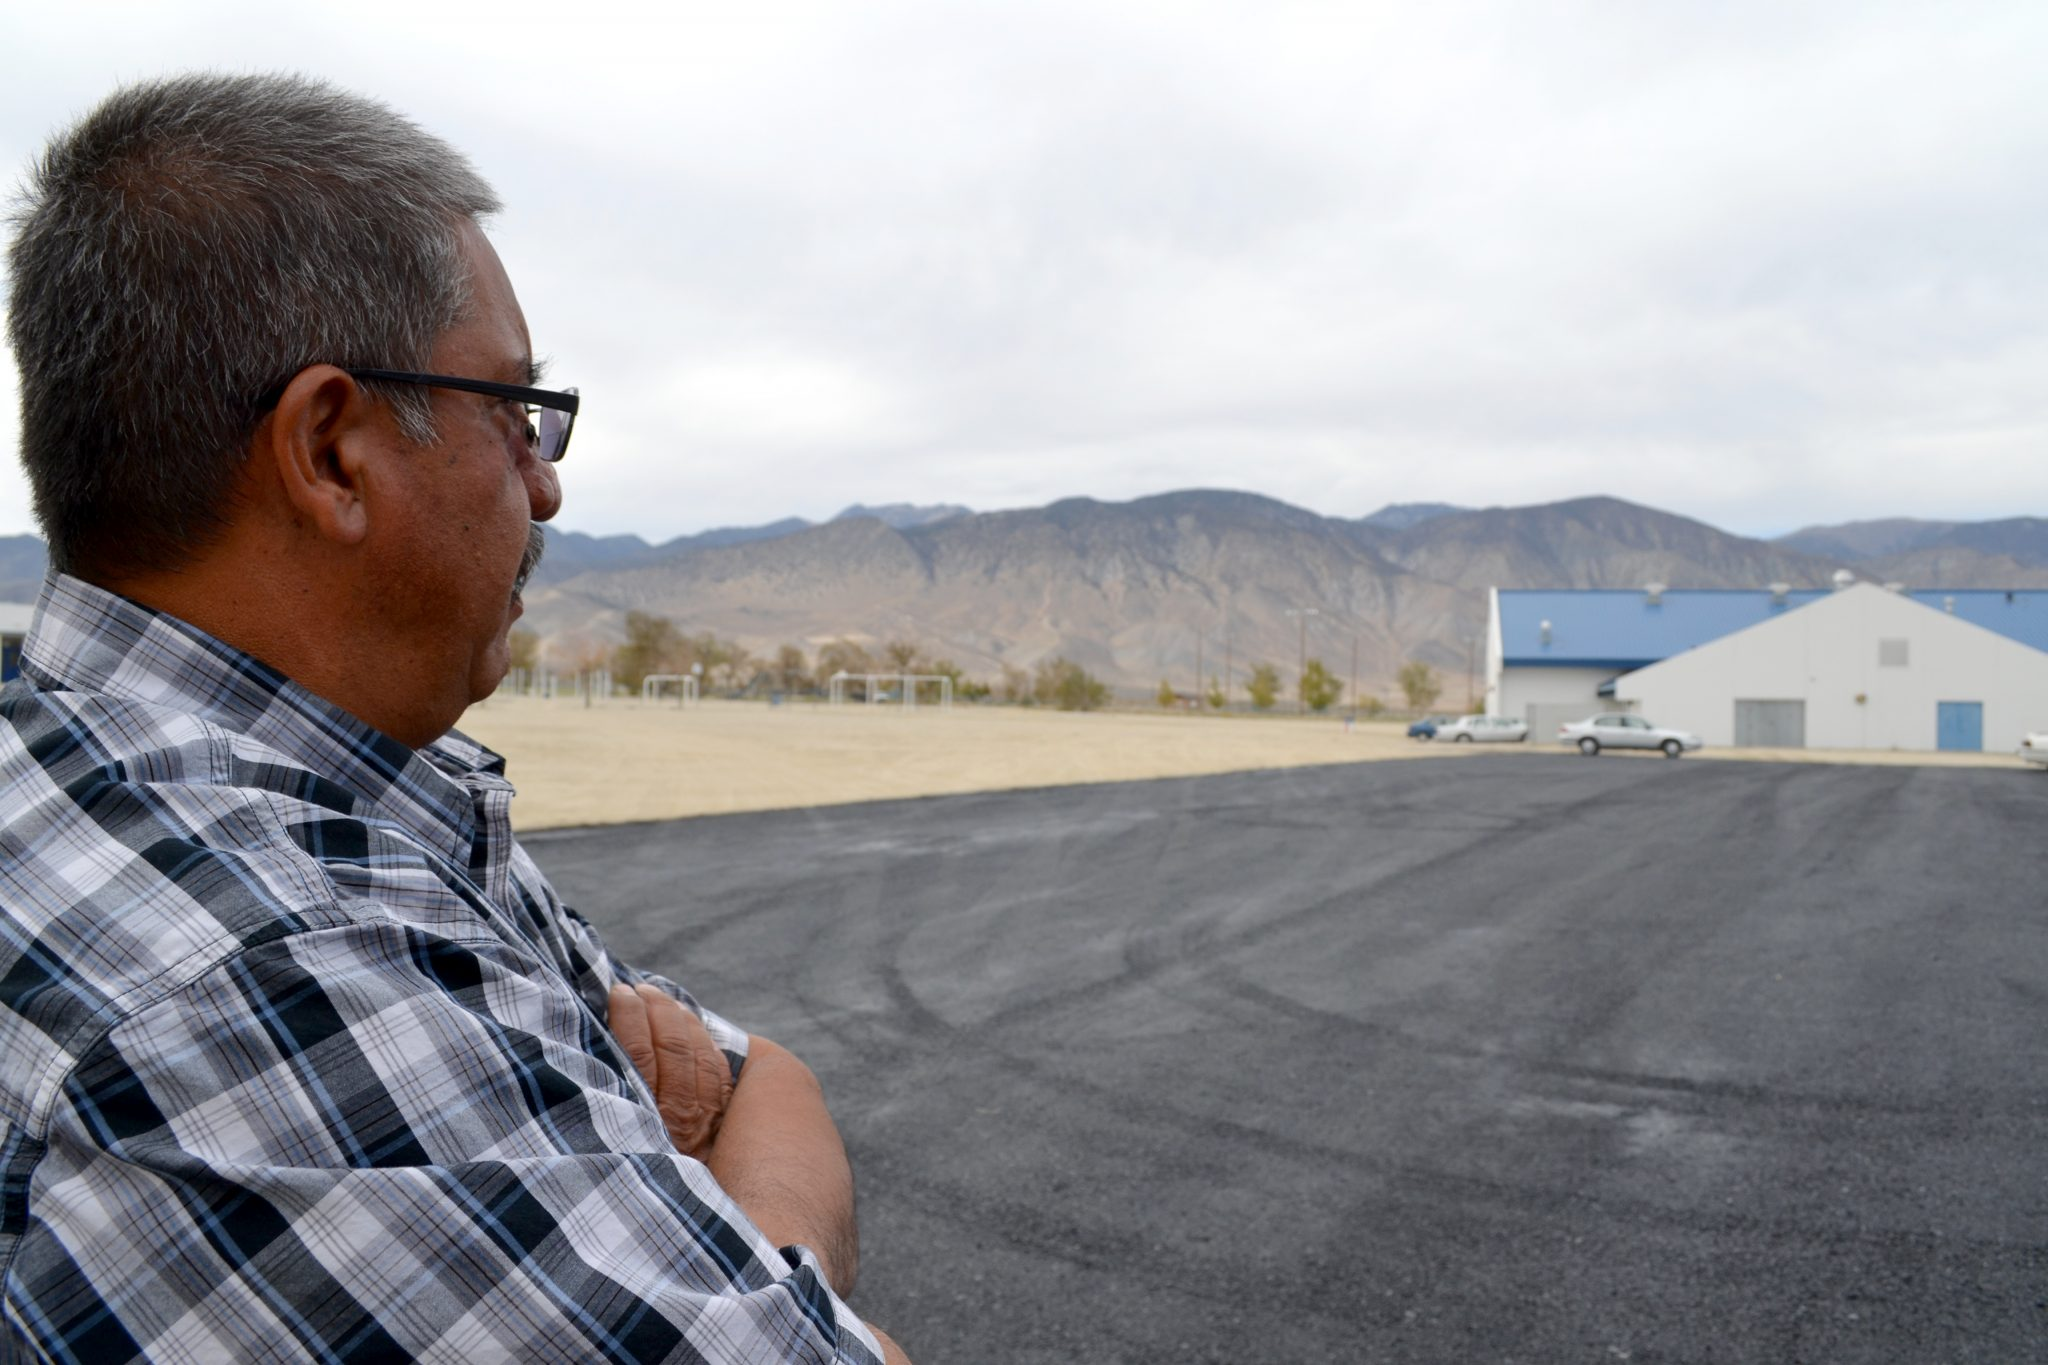 New school parking lot means less headaches